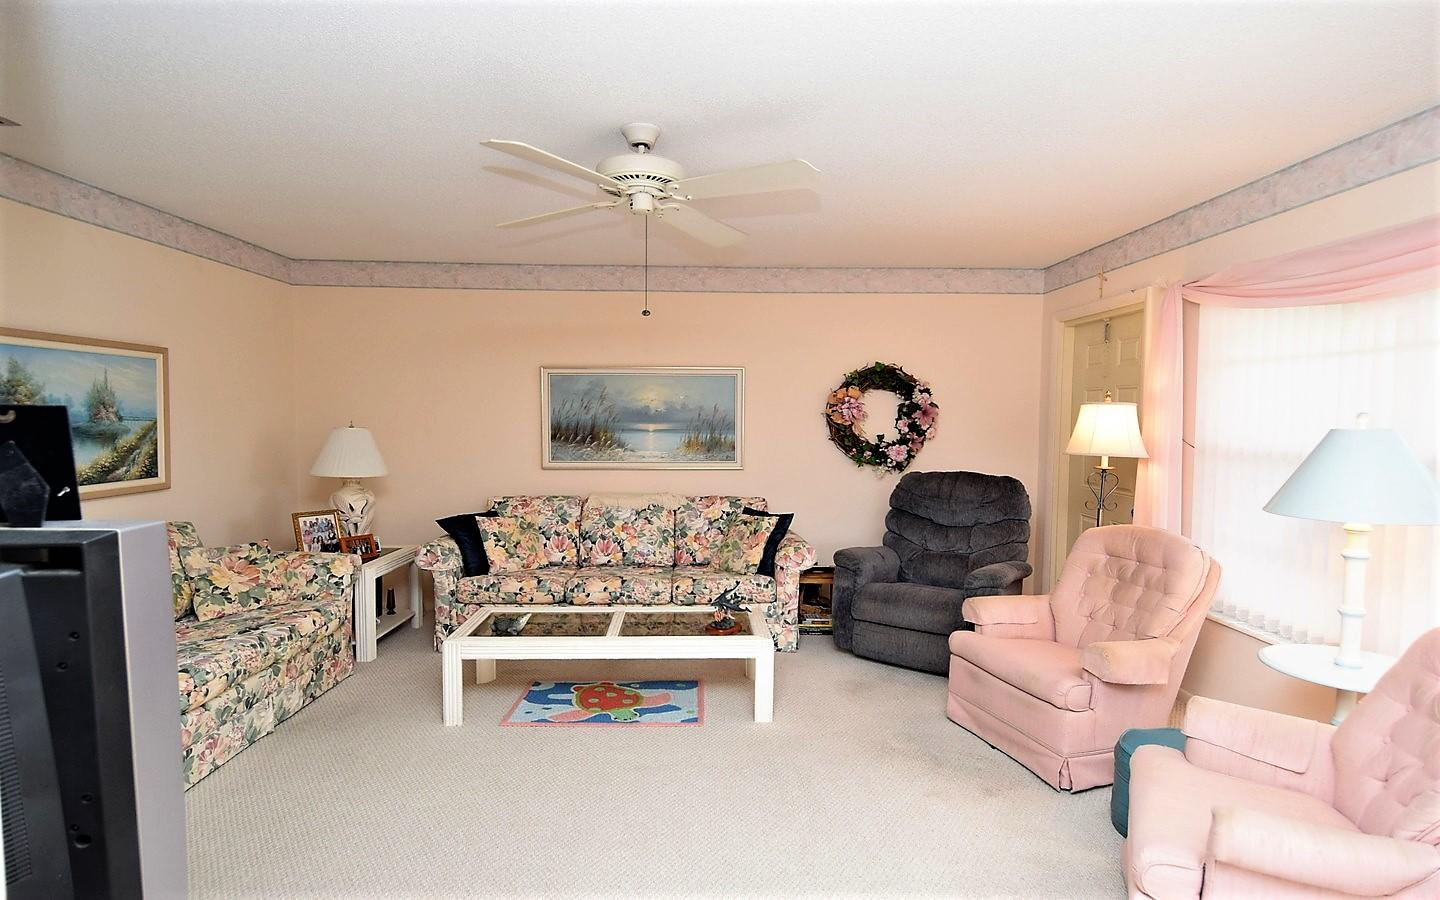 CEDAR POINTE VILLAGE NO 5 APT 8 N OR 355/2253